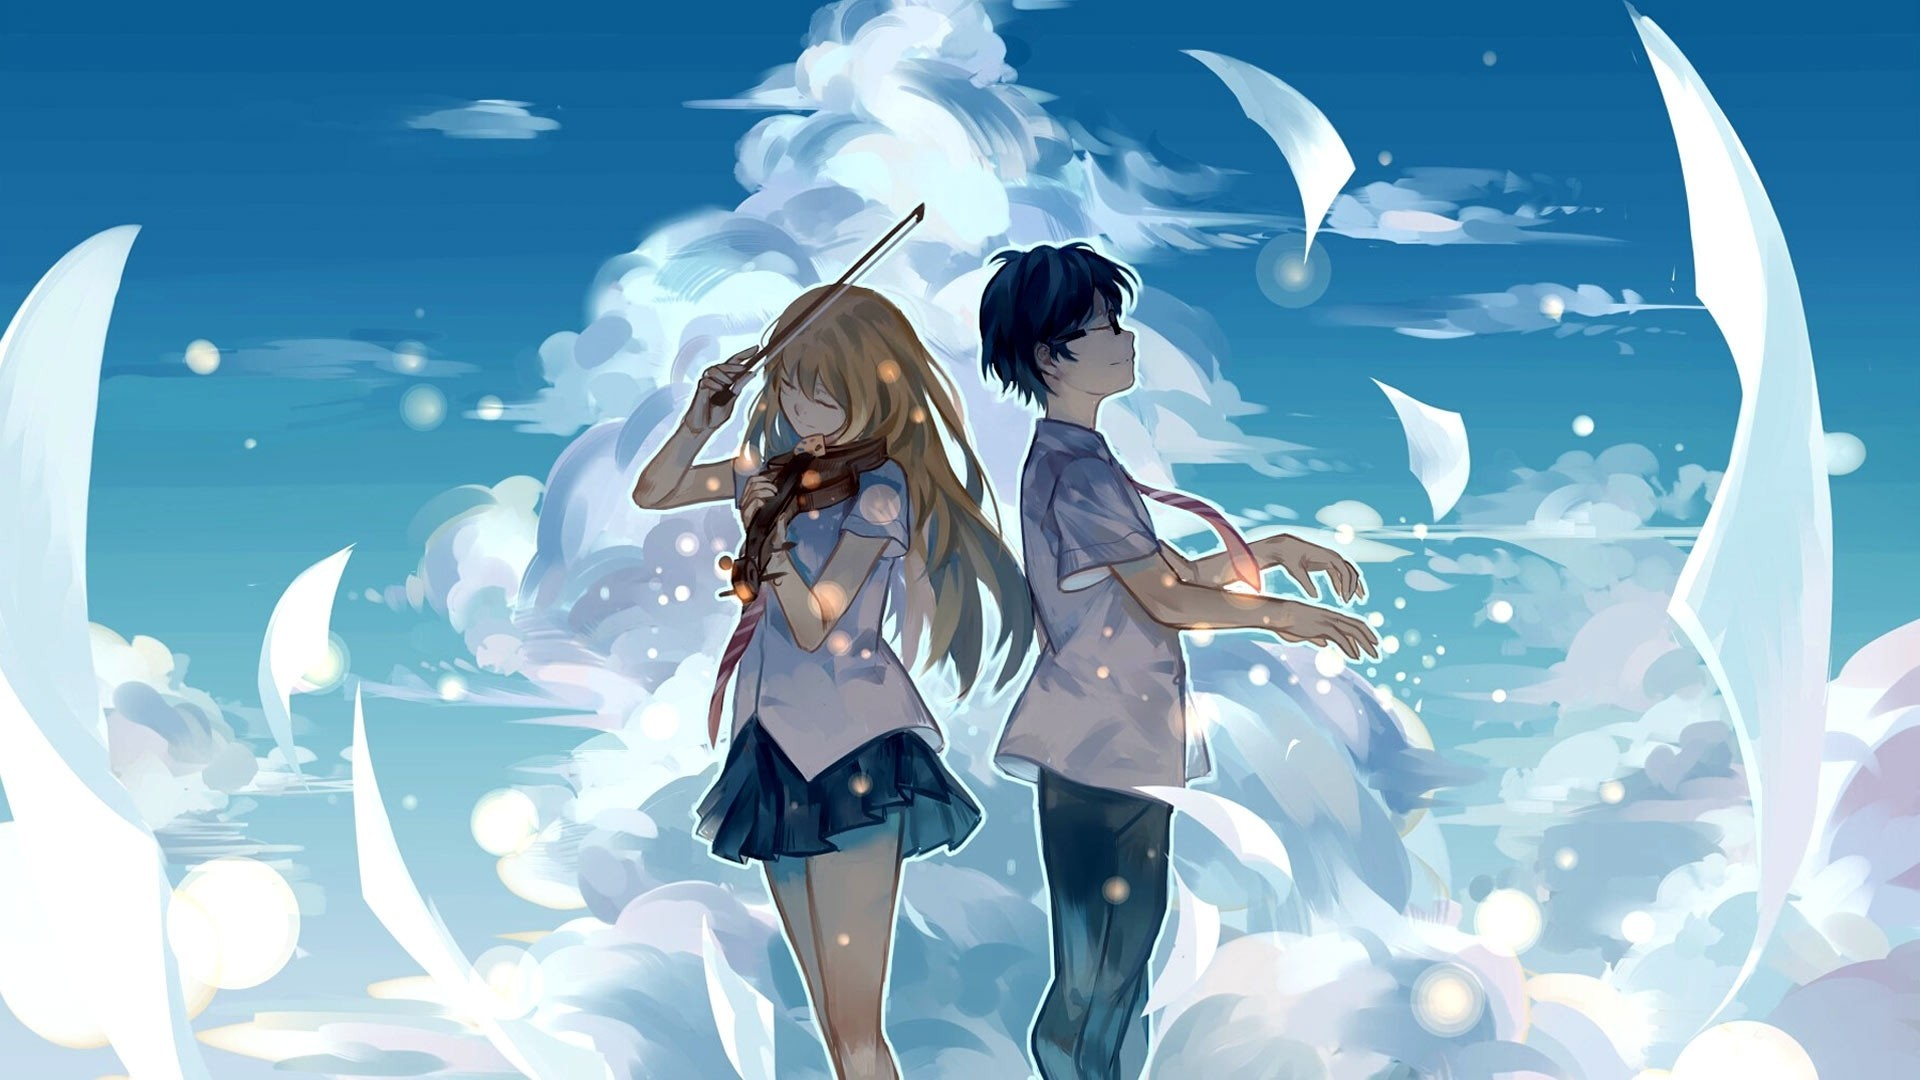 Anime Wallpapers 1920x1080 86 Background Pictures 25 anime wallpaper windows 10